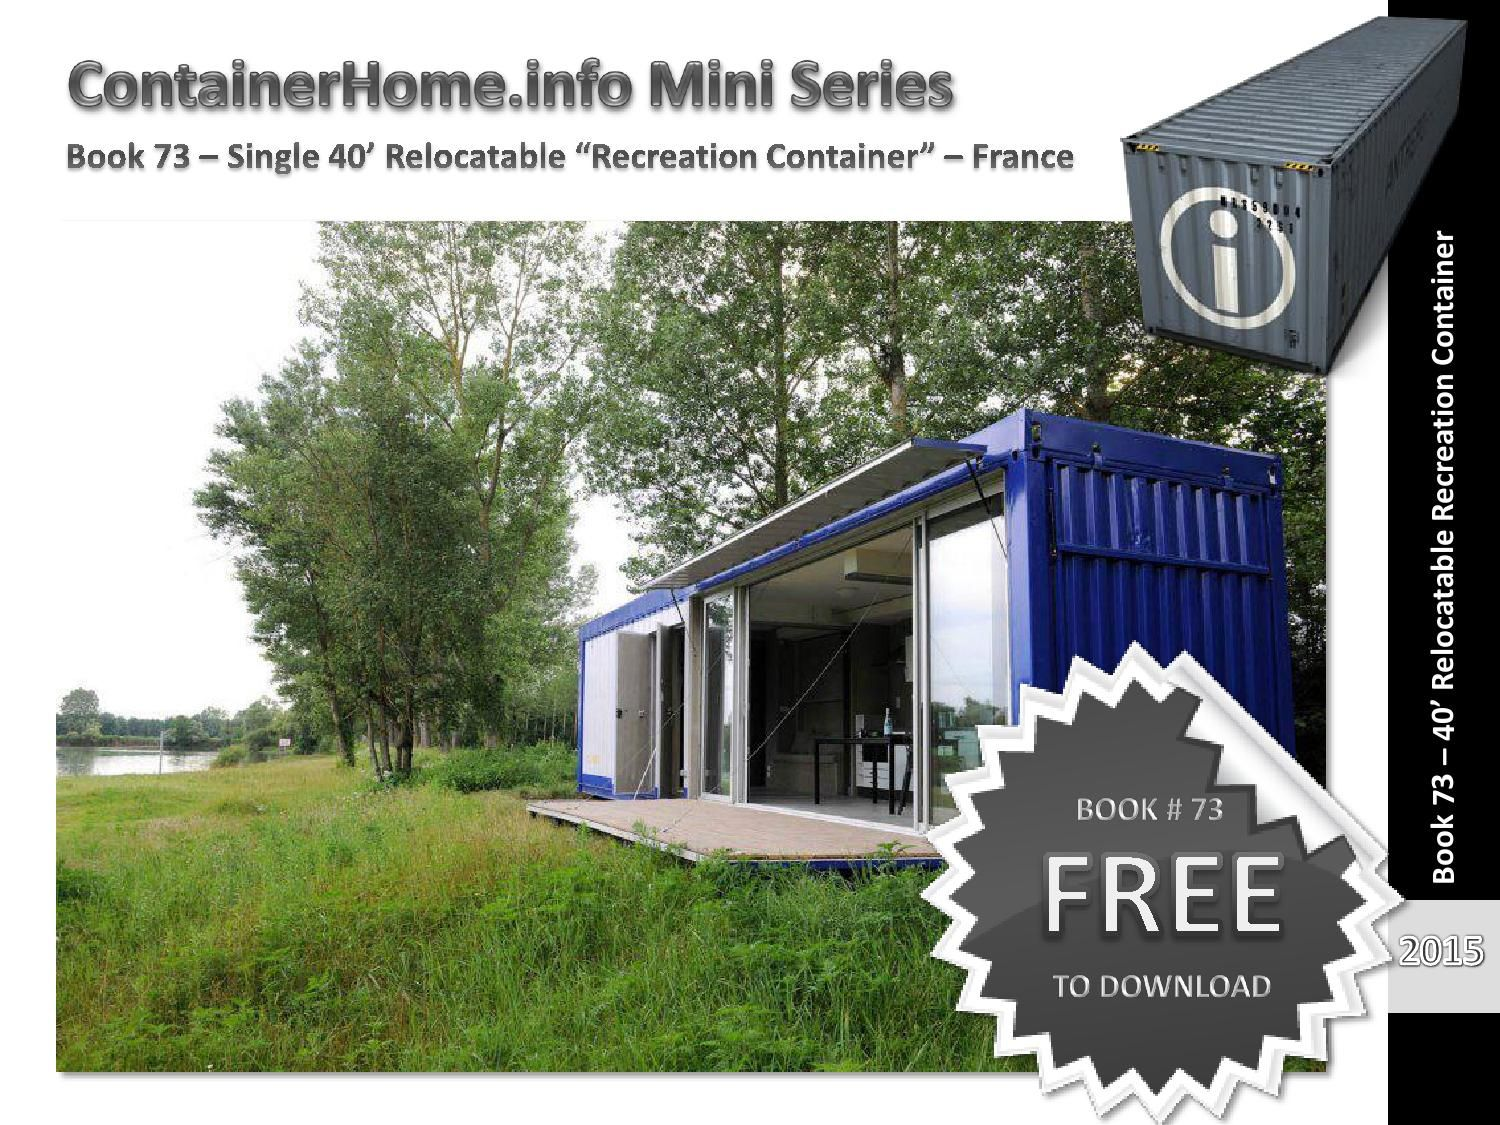 Shipping Container Homes Book 73 by shippingcontainerhomes - issuu